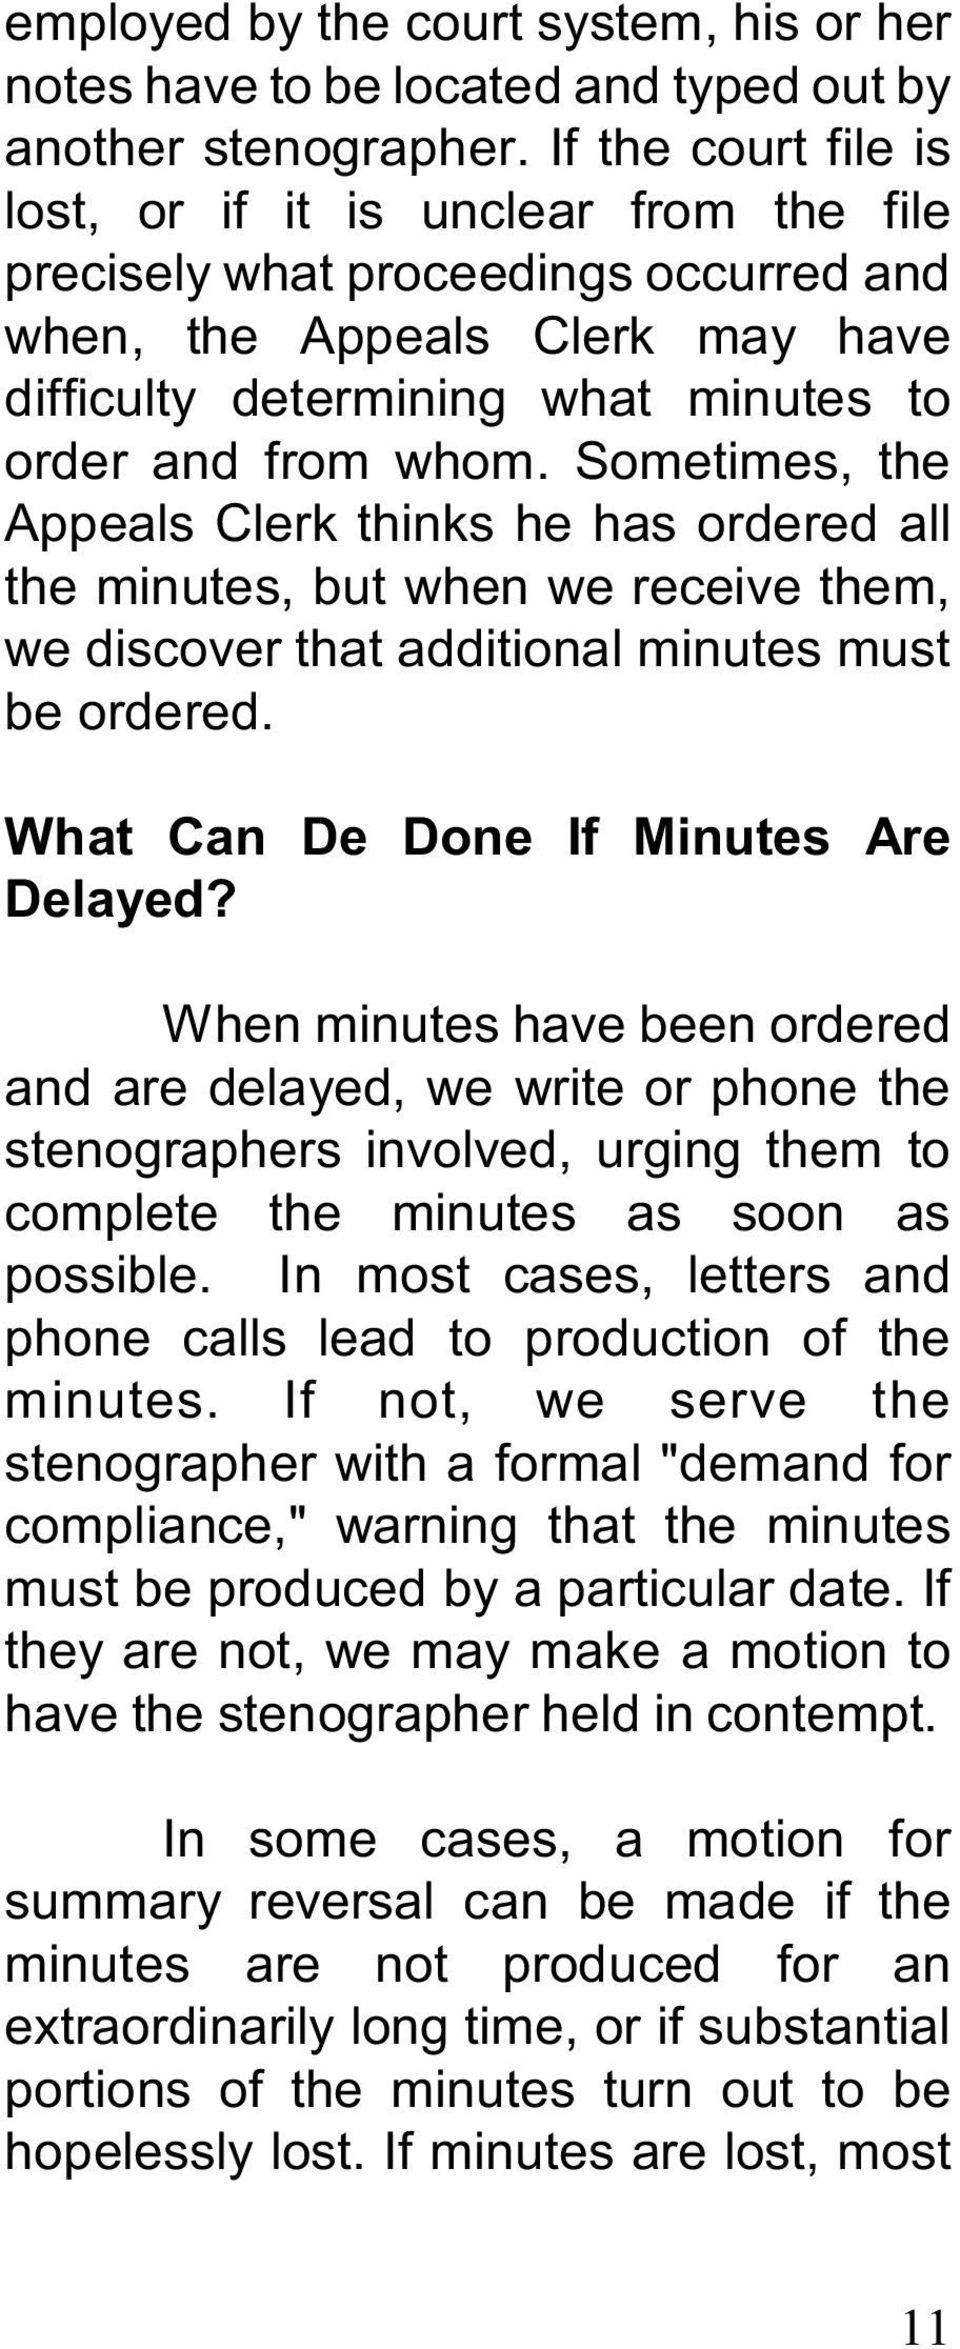 Sometimes, the Appeals Clerk thinks he has ordered all the minutes, but when we receive them, we discover that additional minutes must be ordered. What Can De Done If Minutes Are Delayed?